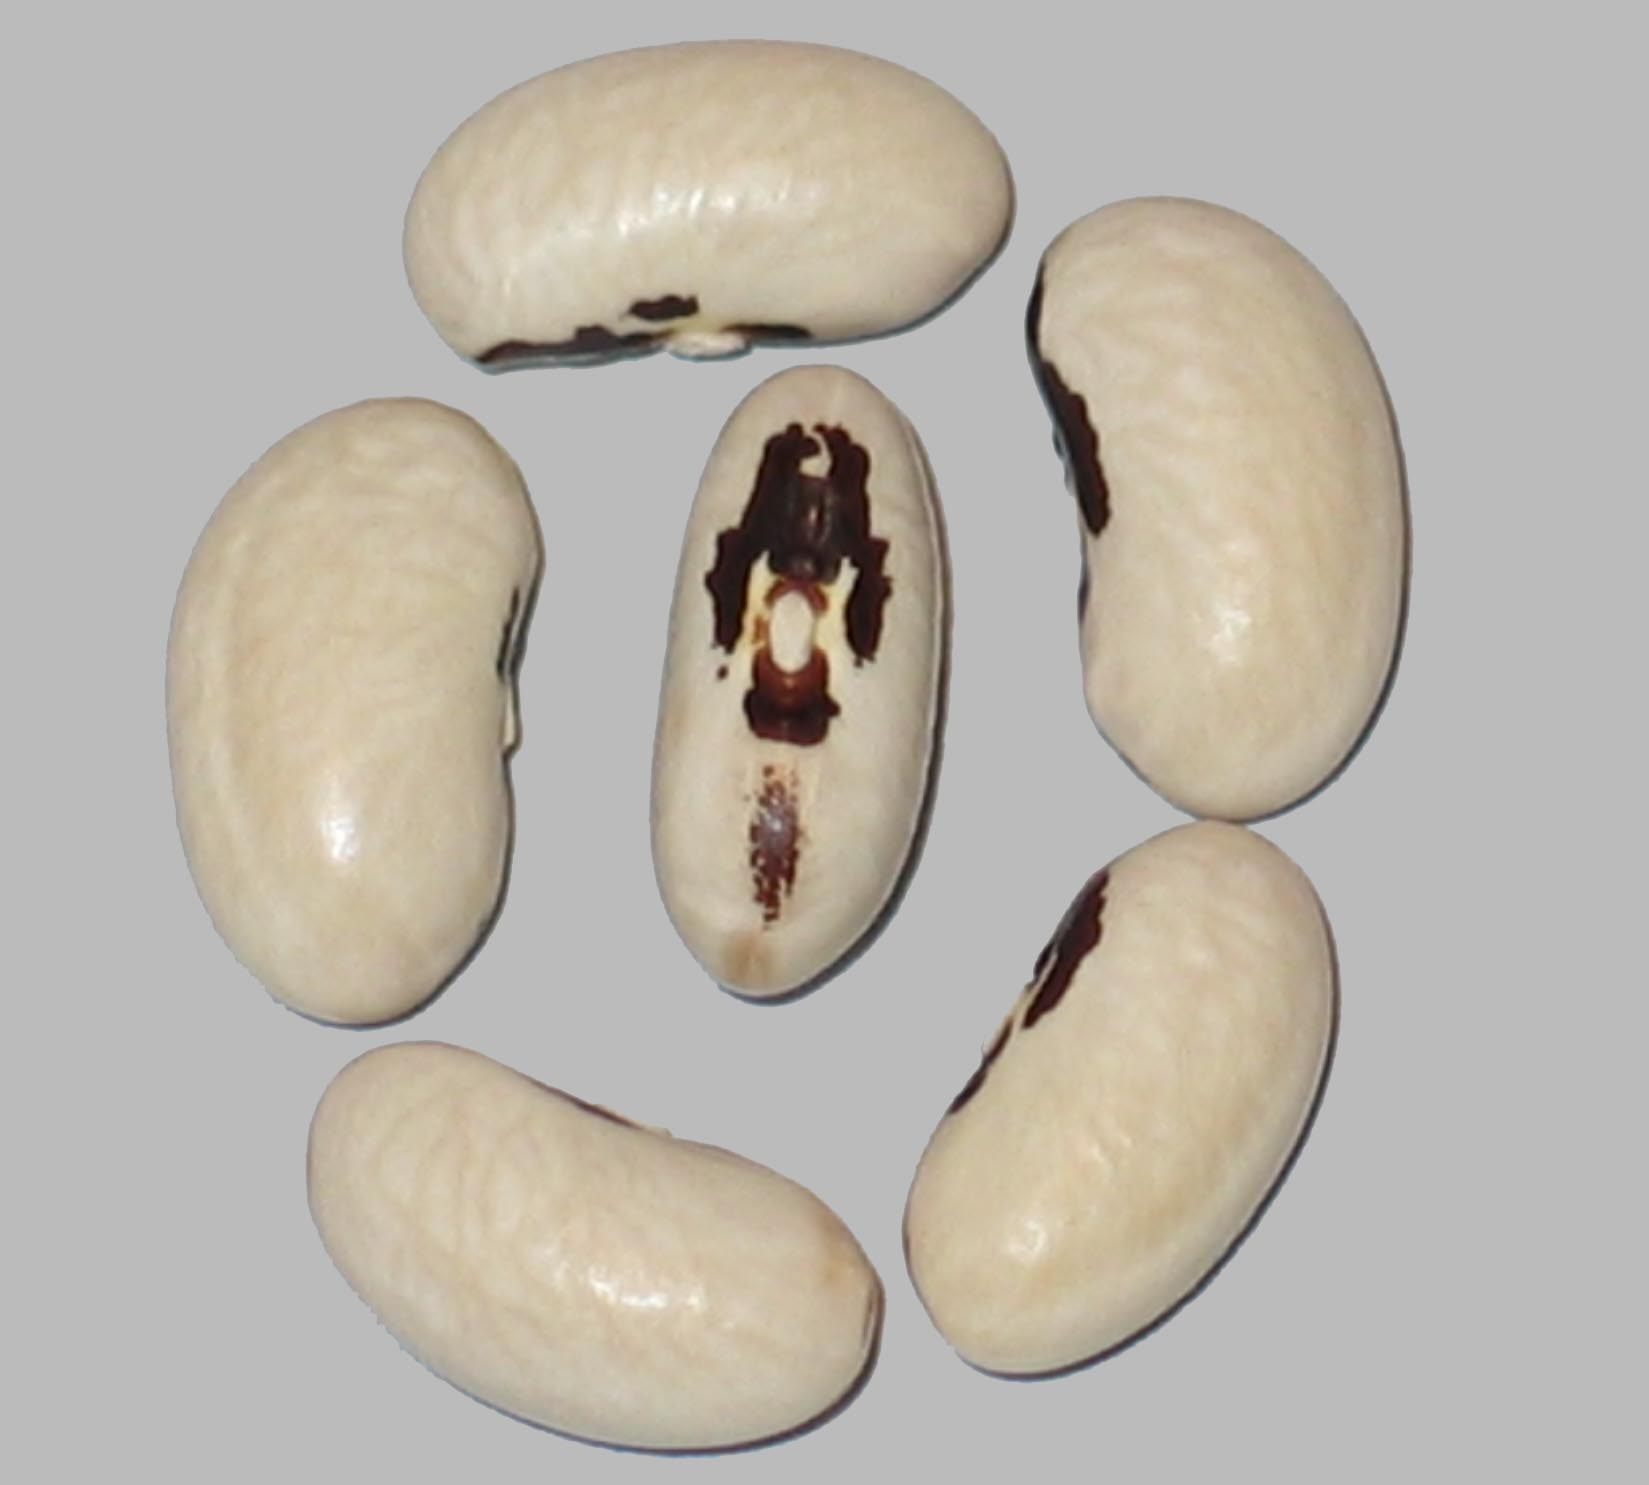 image of Southern Soldier beans